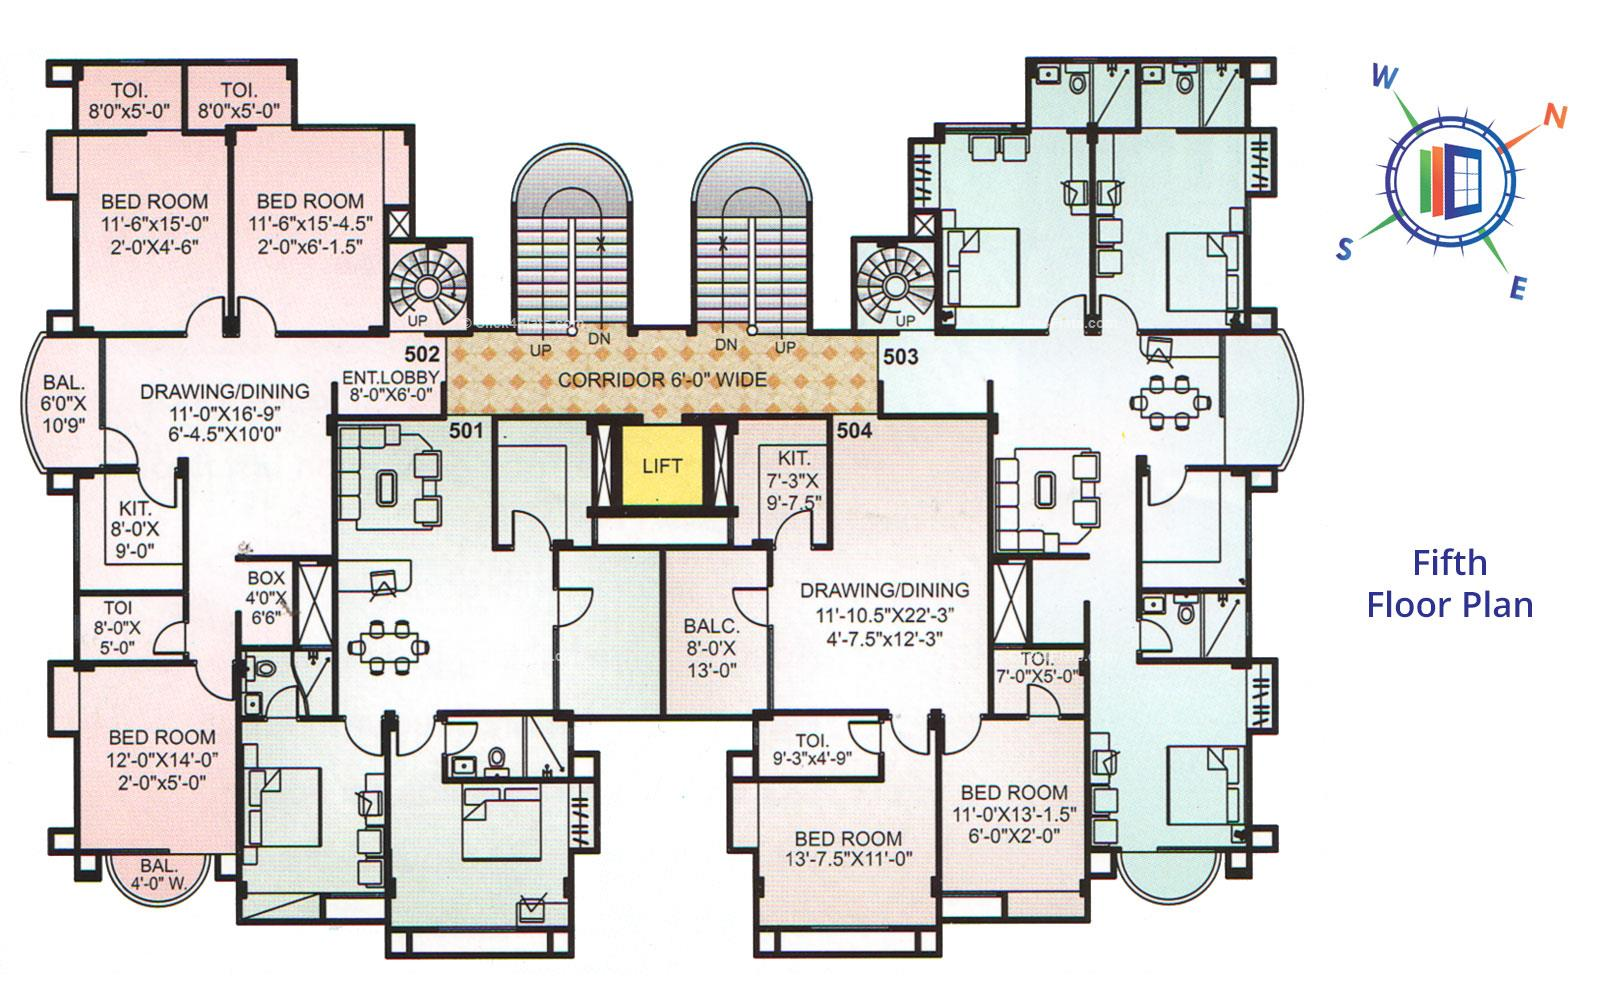 Whispering Palms Fifth Floor Plan